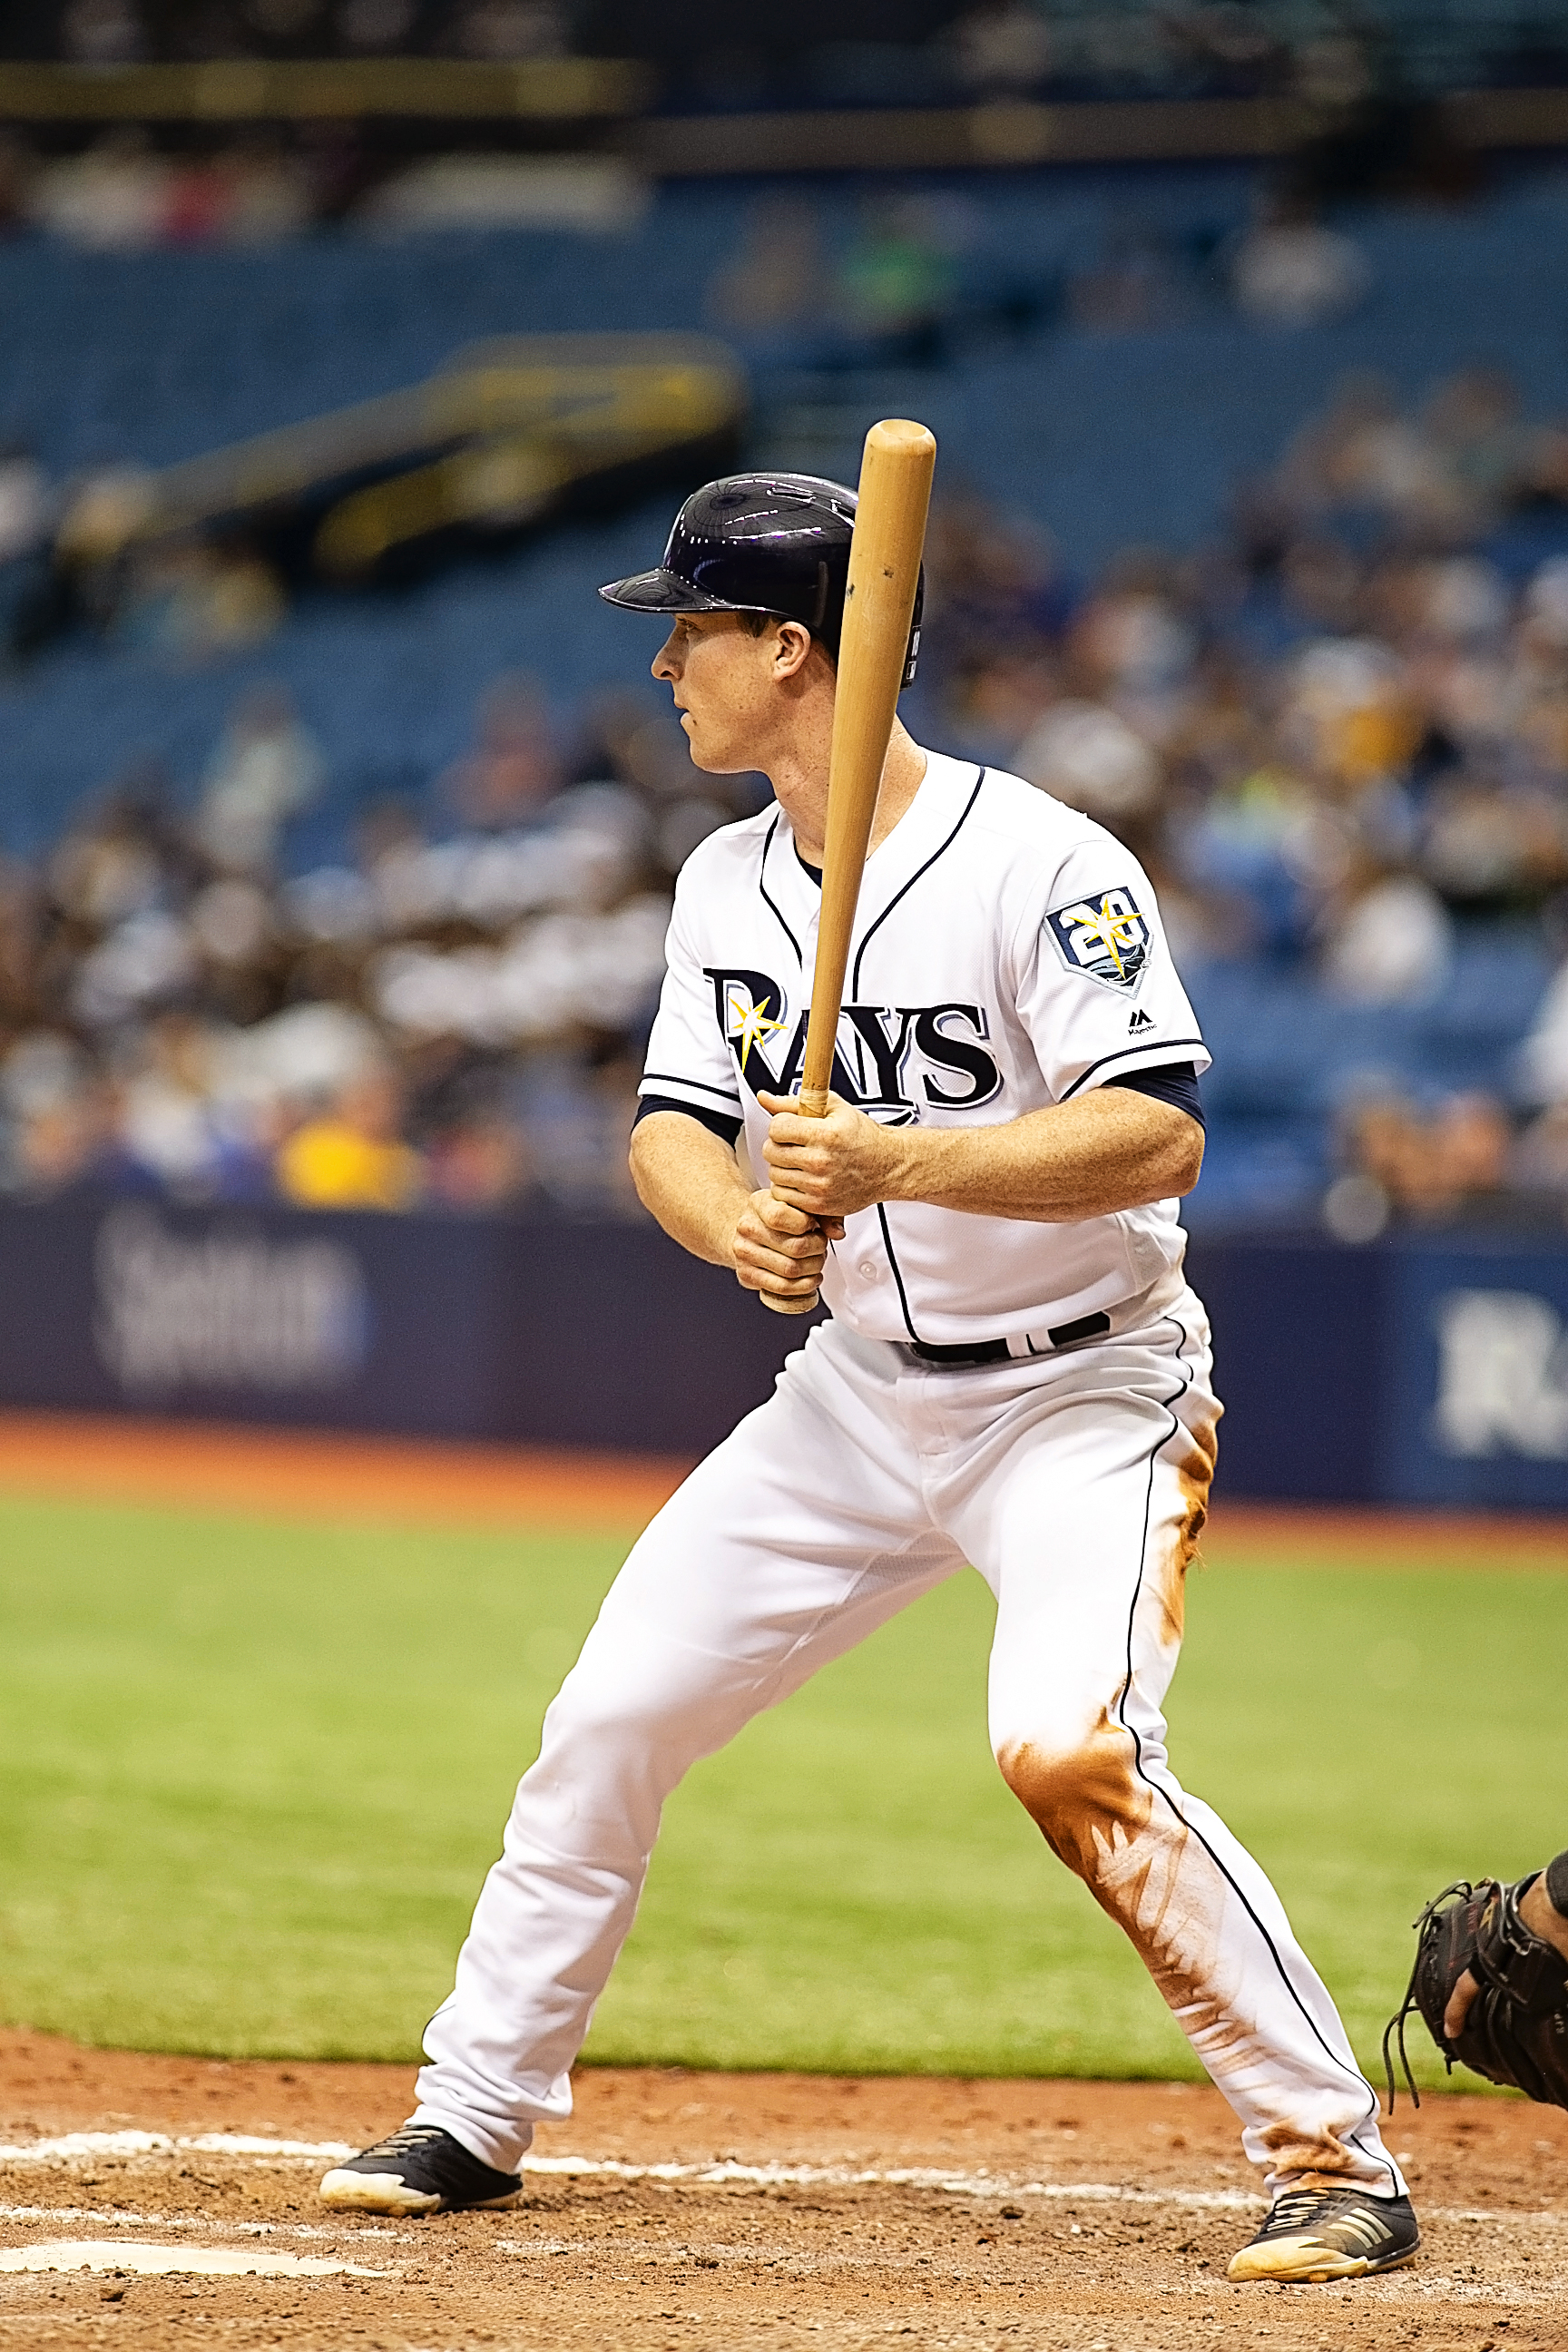 Wendle had a two-run single for the Rays./CARMEN MANDATO